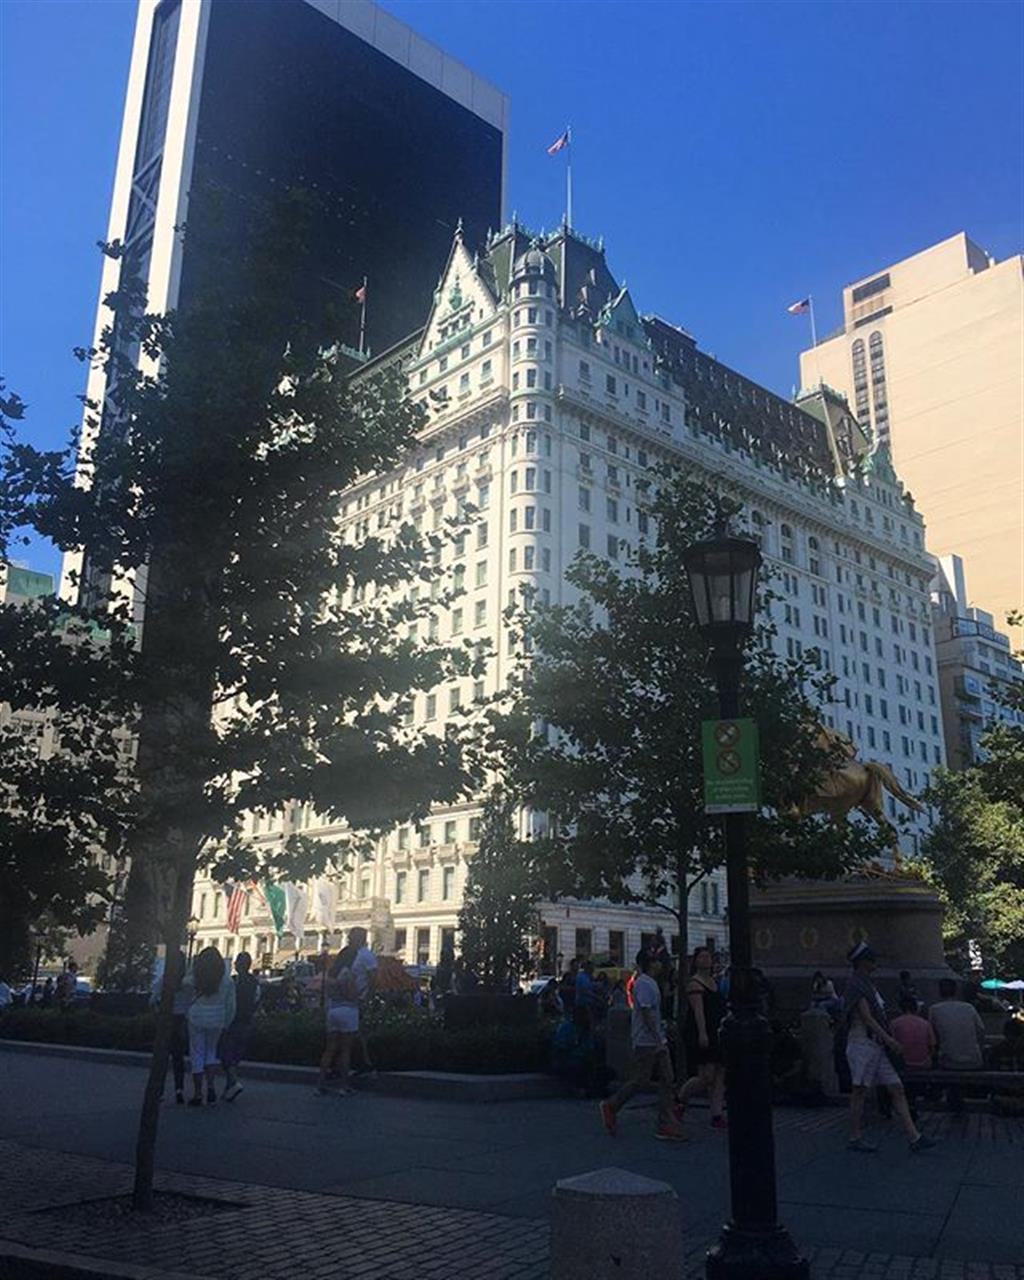 Looking for Elouise #newyork #newyork #leadingrelocal #architecture